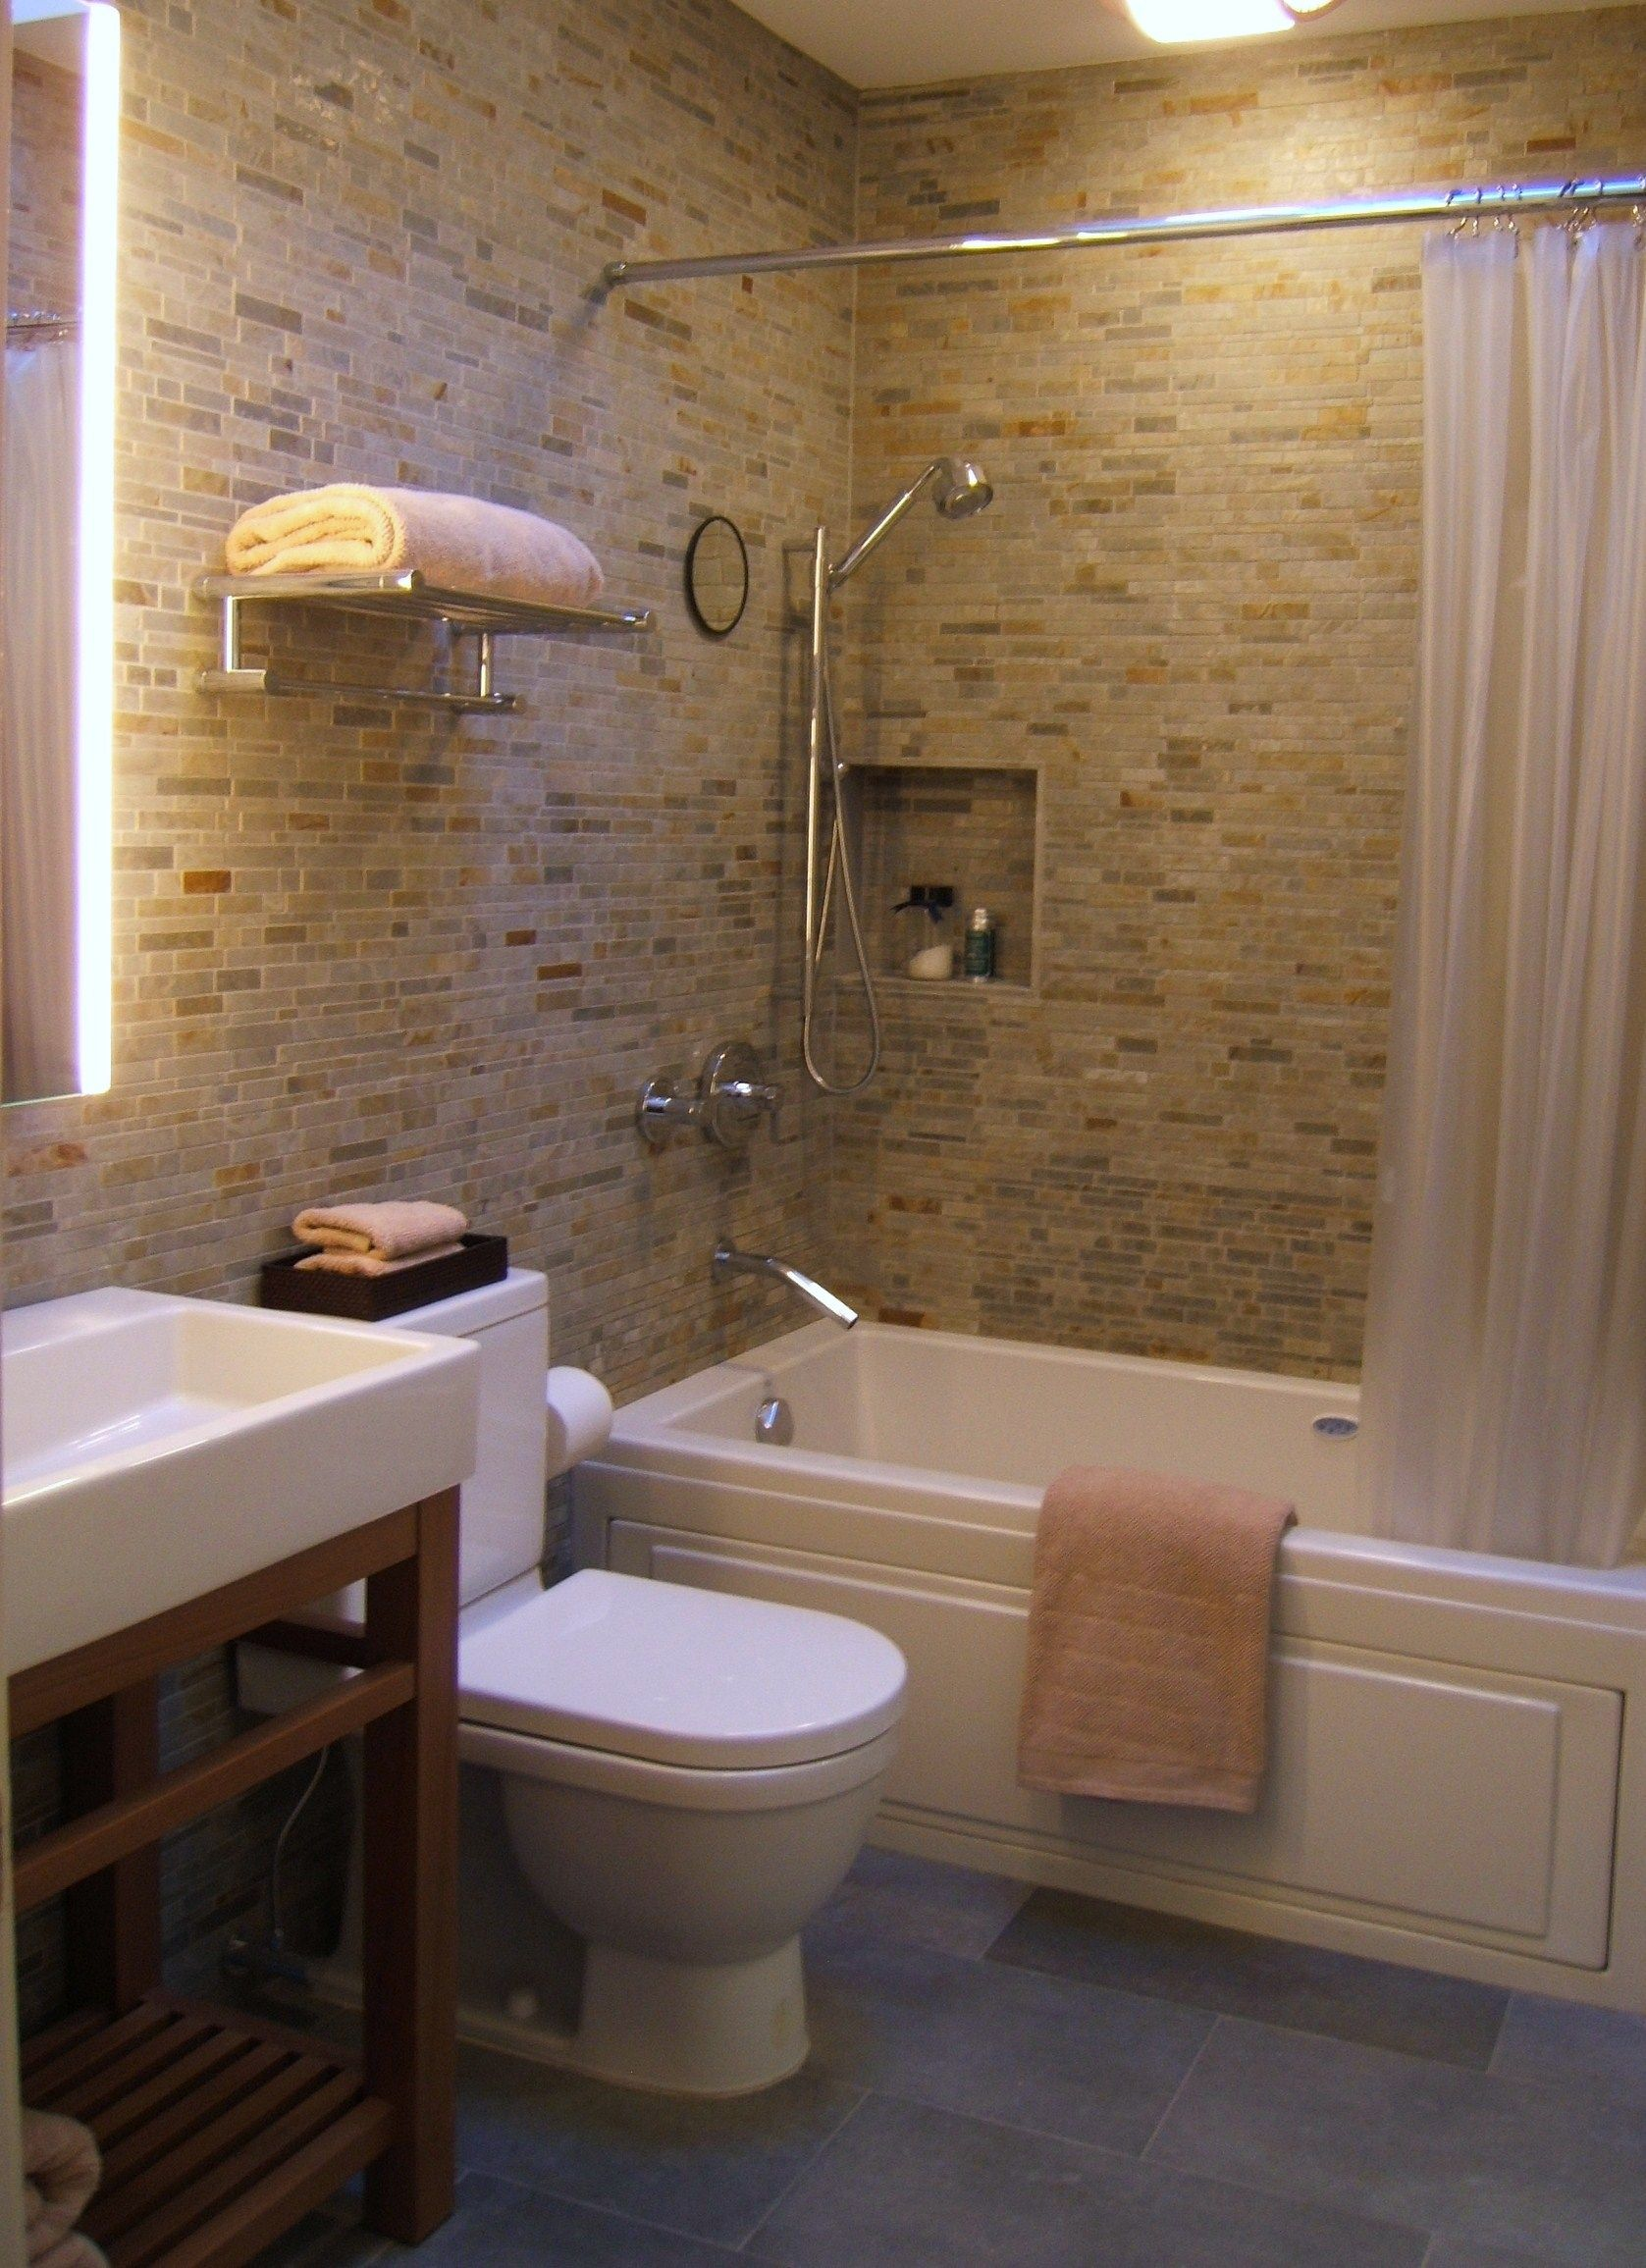 Small bathroom designs south africa small bath for Small baths for small bathrooms